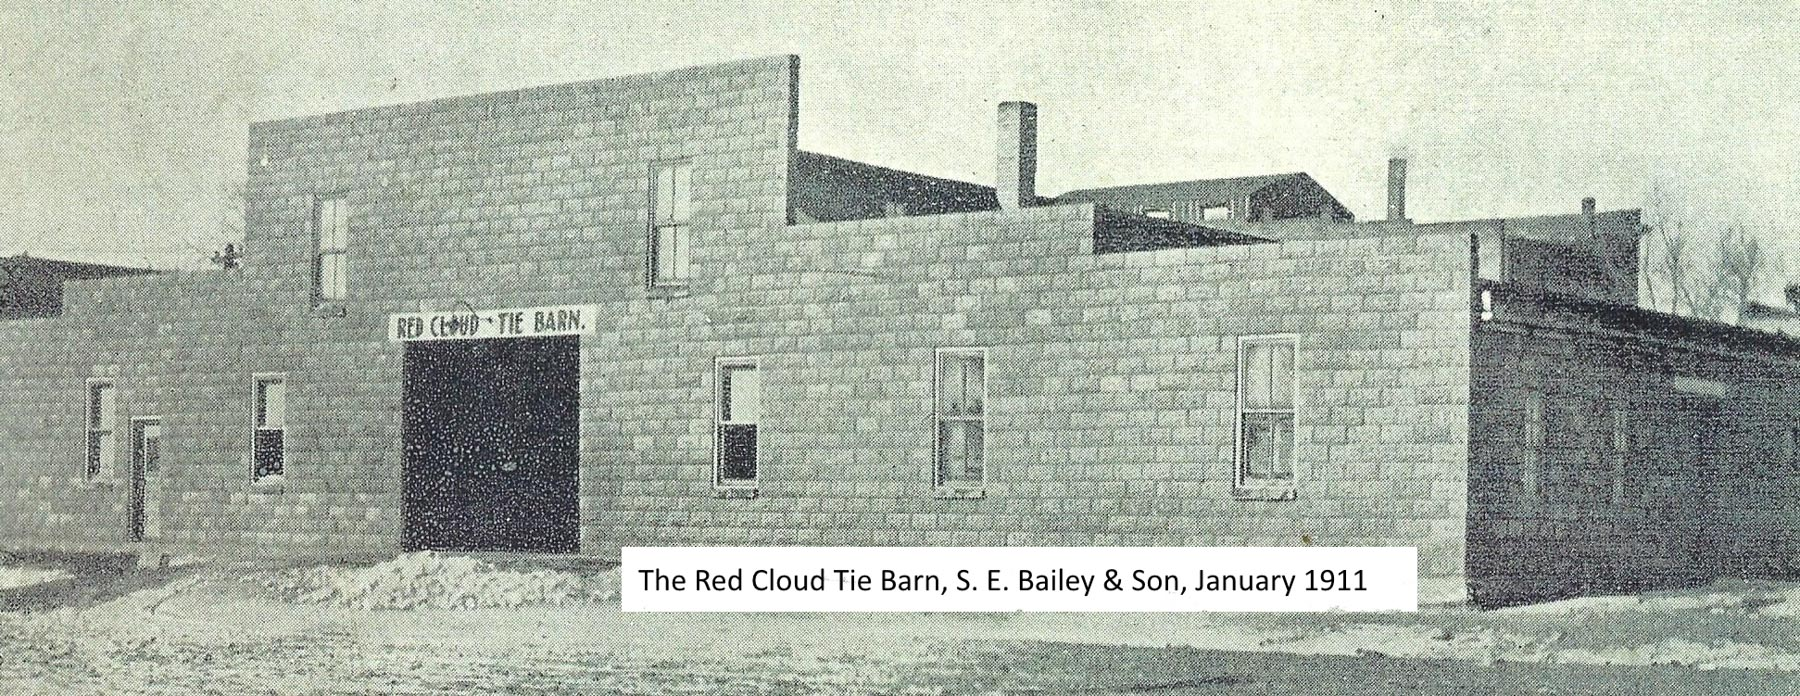 Baileys Red Cloud Tie Barn